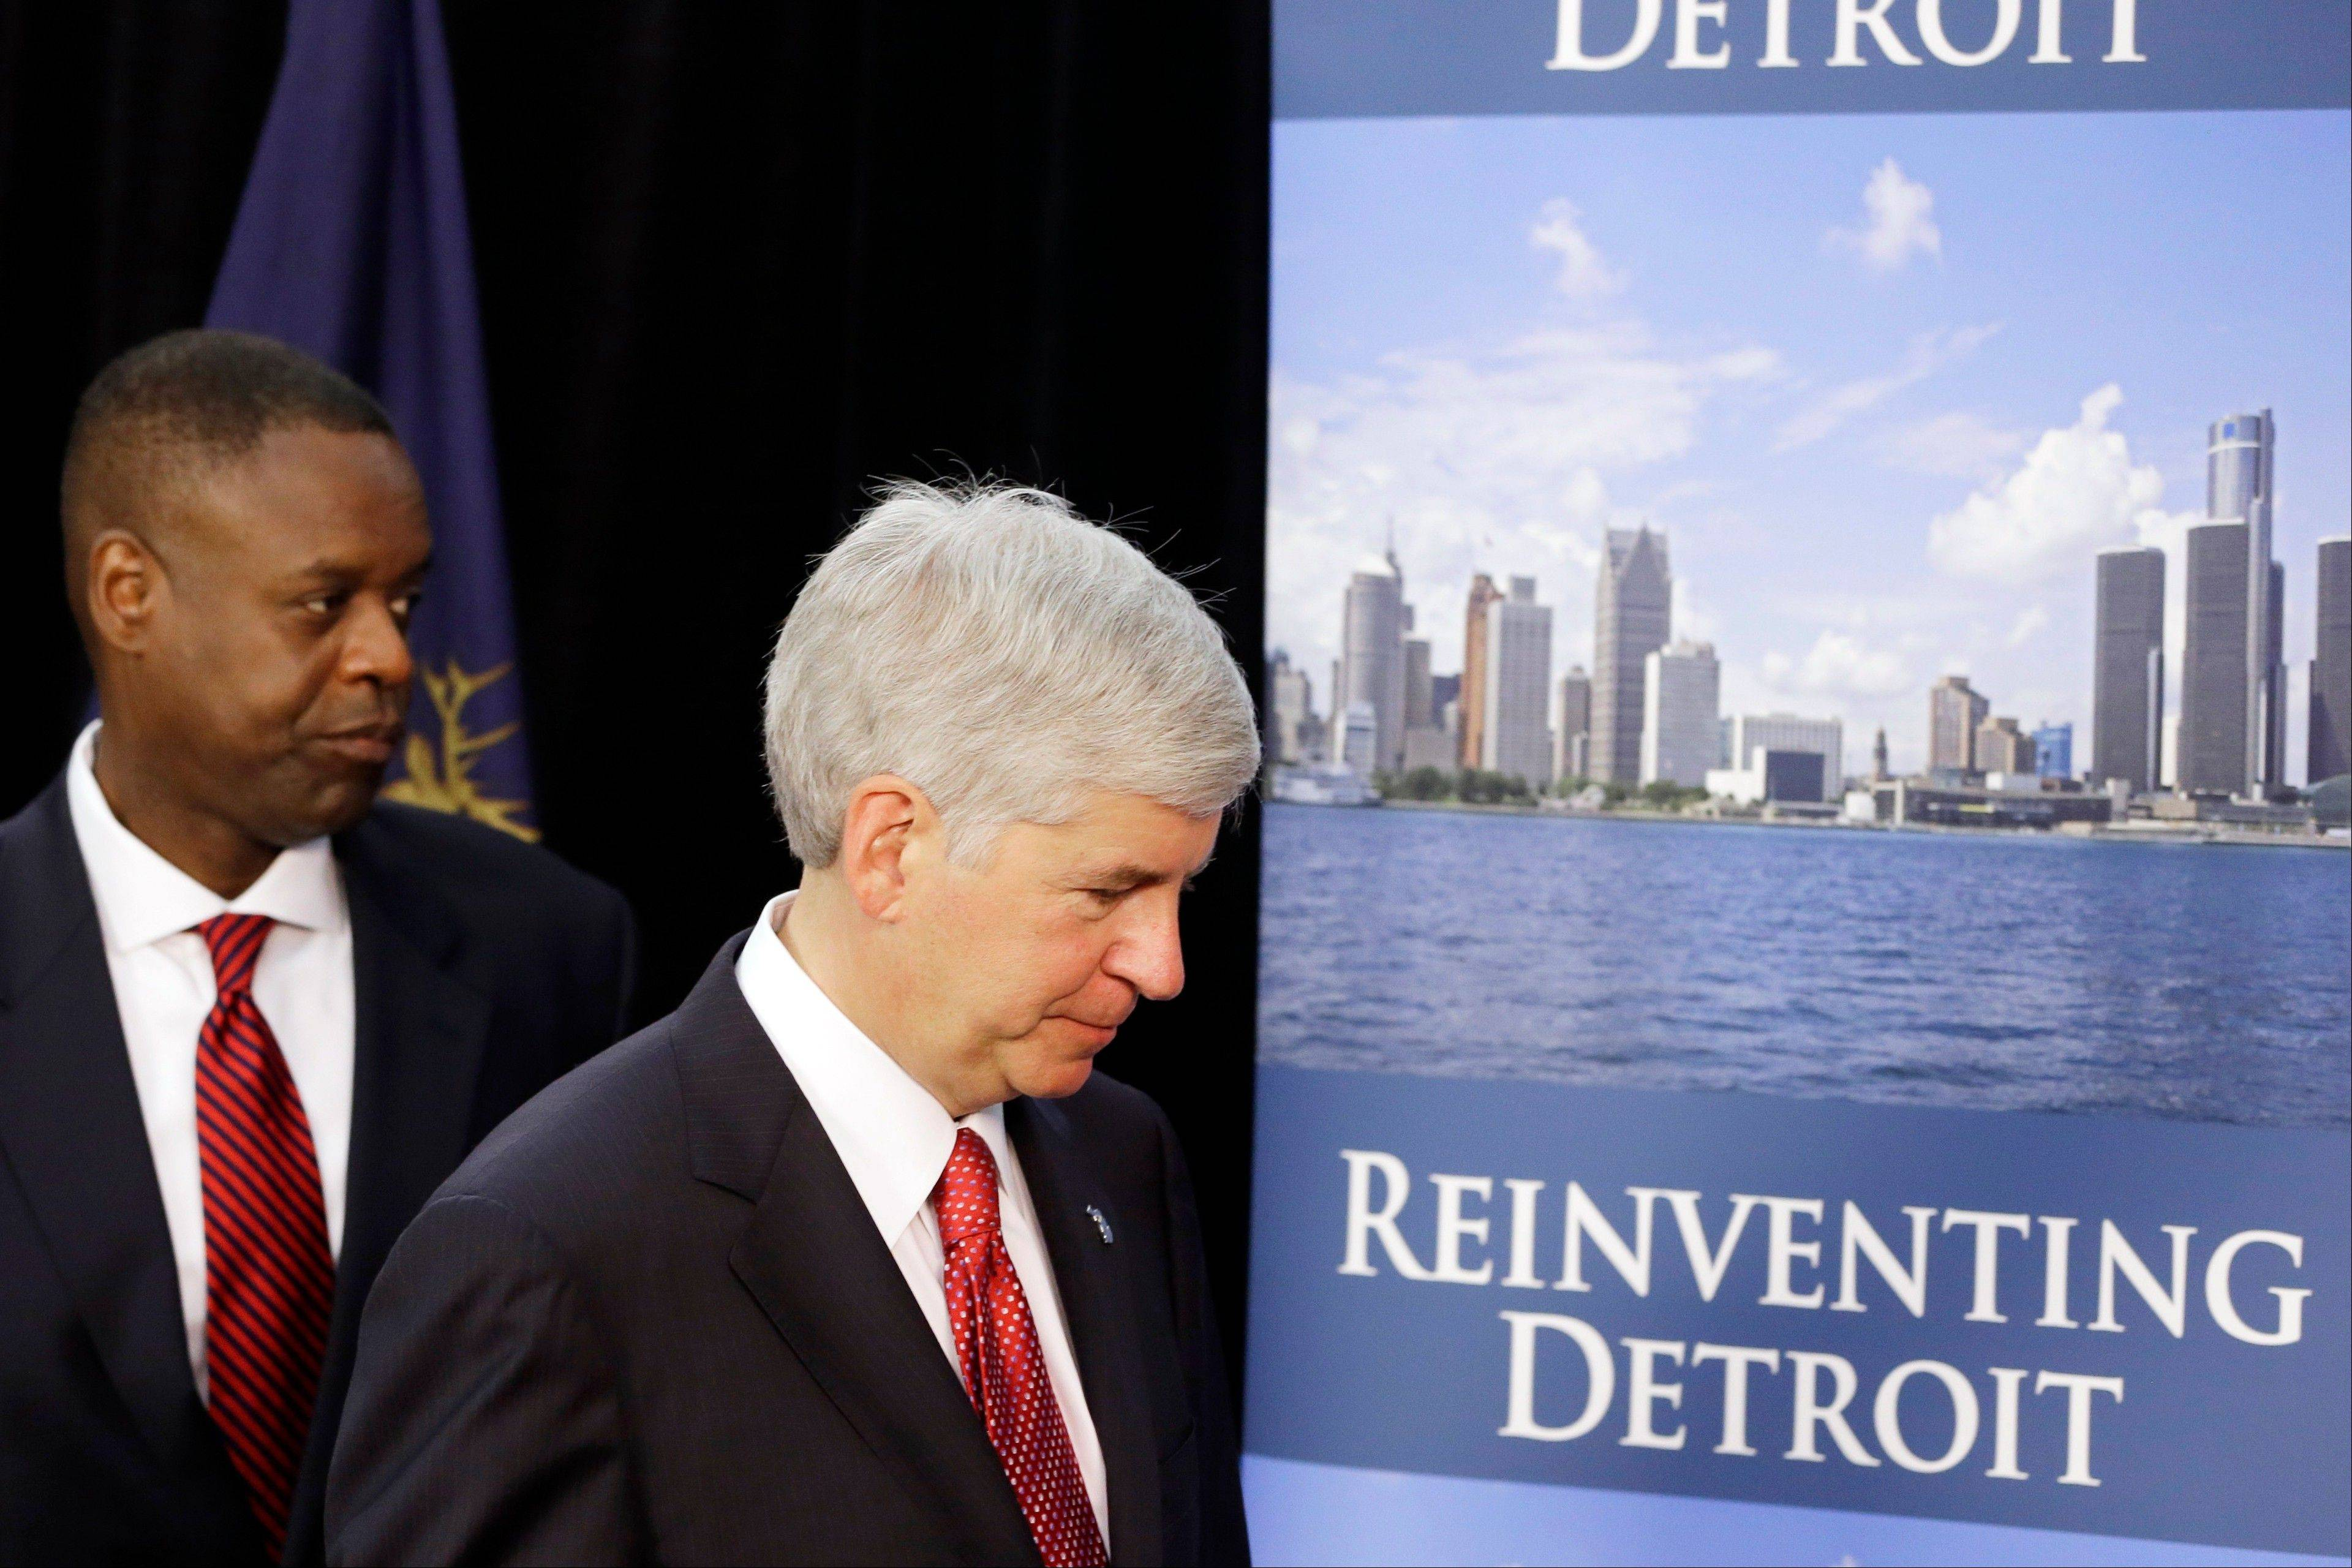 Michigan Gov. Rick Snyder, right, and state-appointed emergency manager Kevyn Orr leave a news conference in Detroit Friday after addressing the city's bankruptcy.